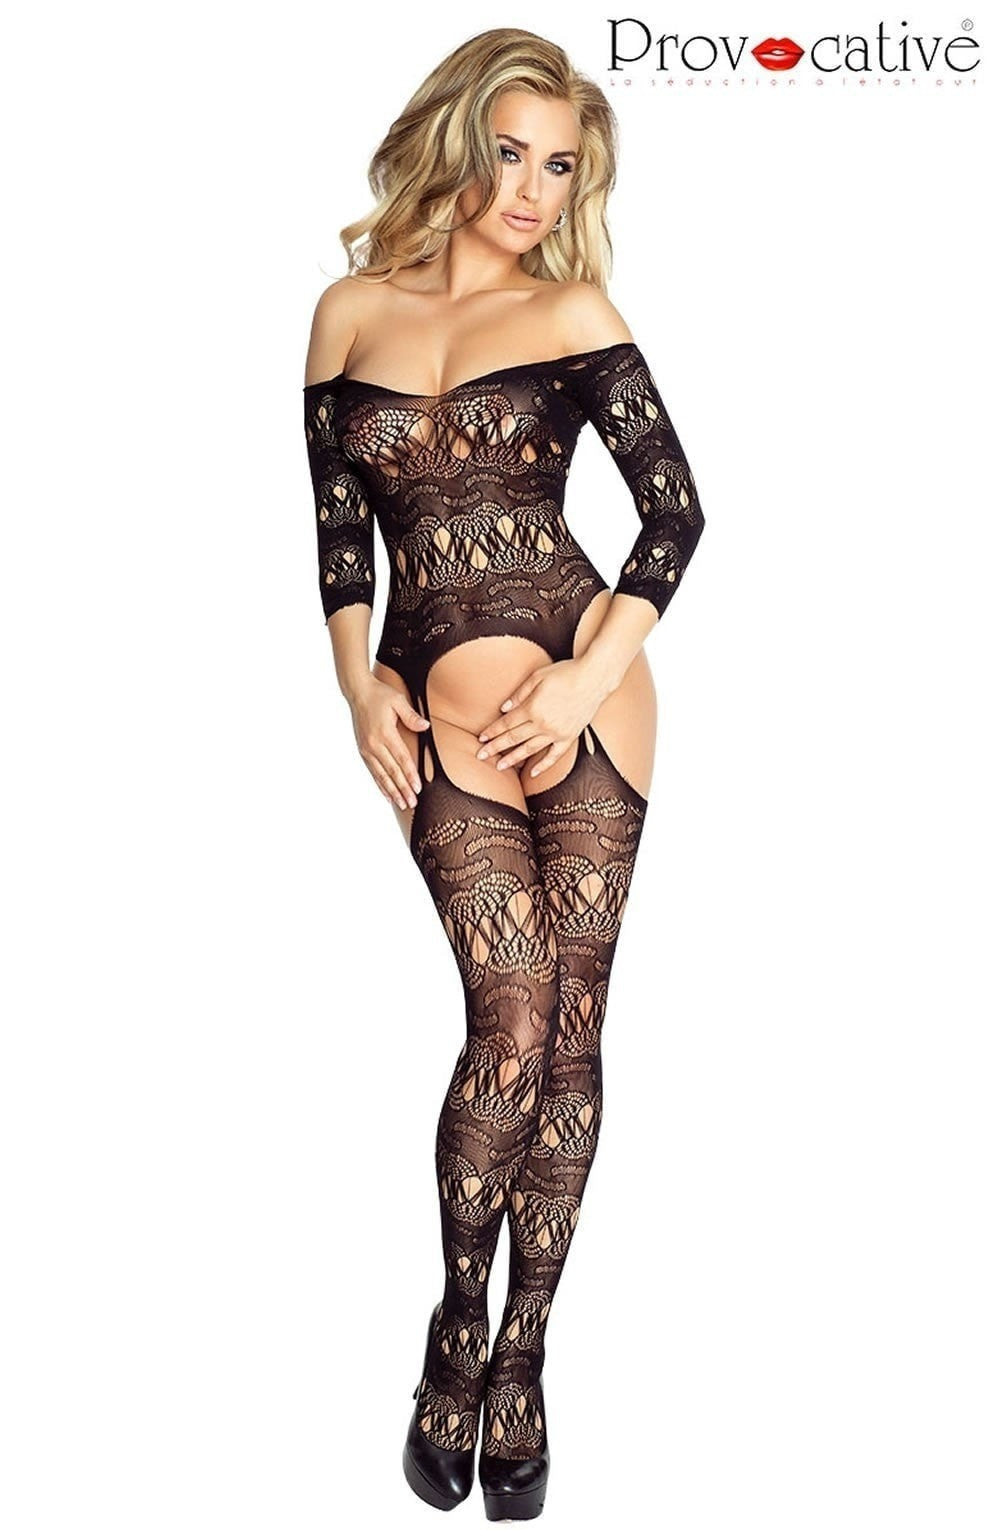 Provocative Bodystocking PR4686 at Charm and Lace Boutique